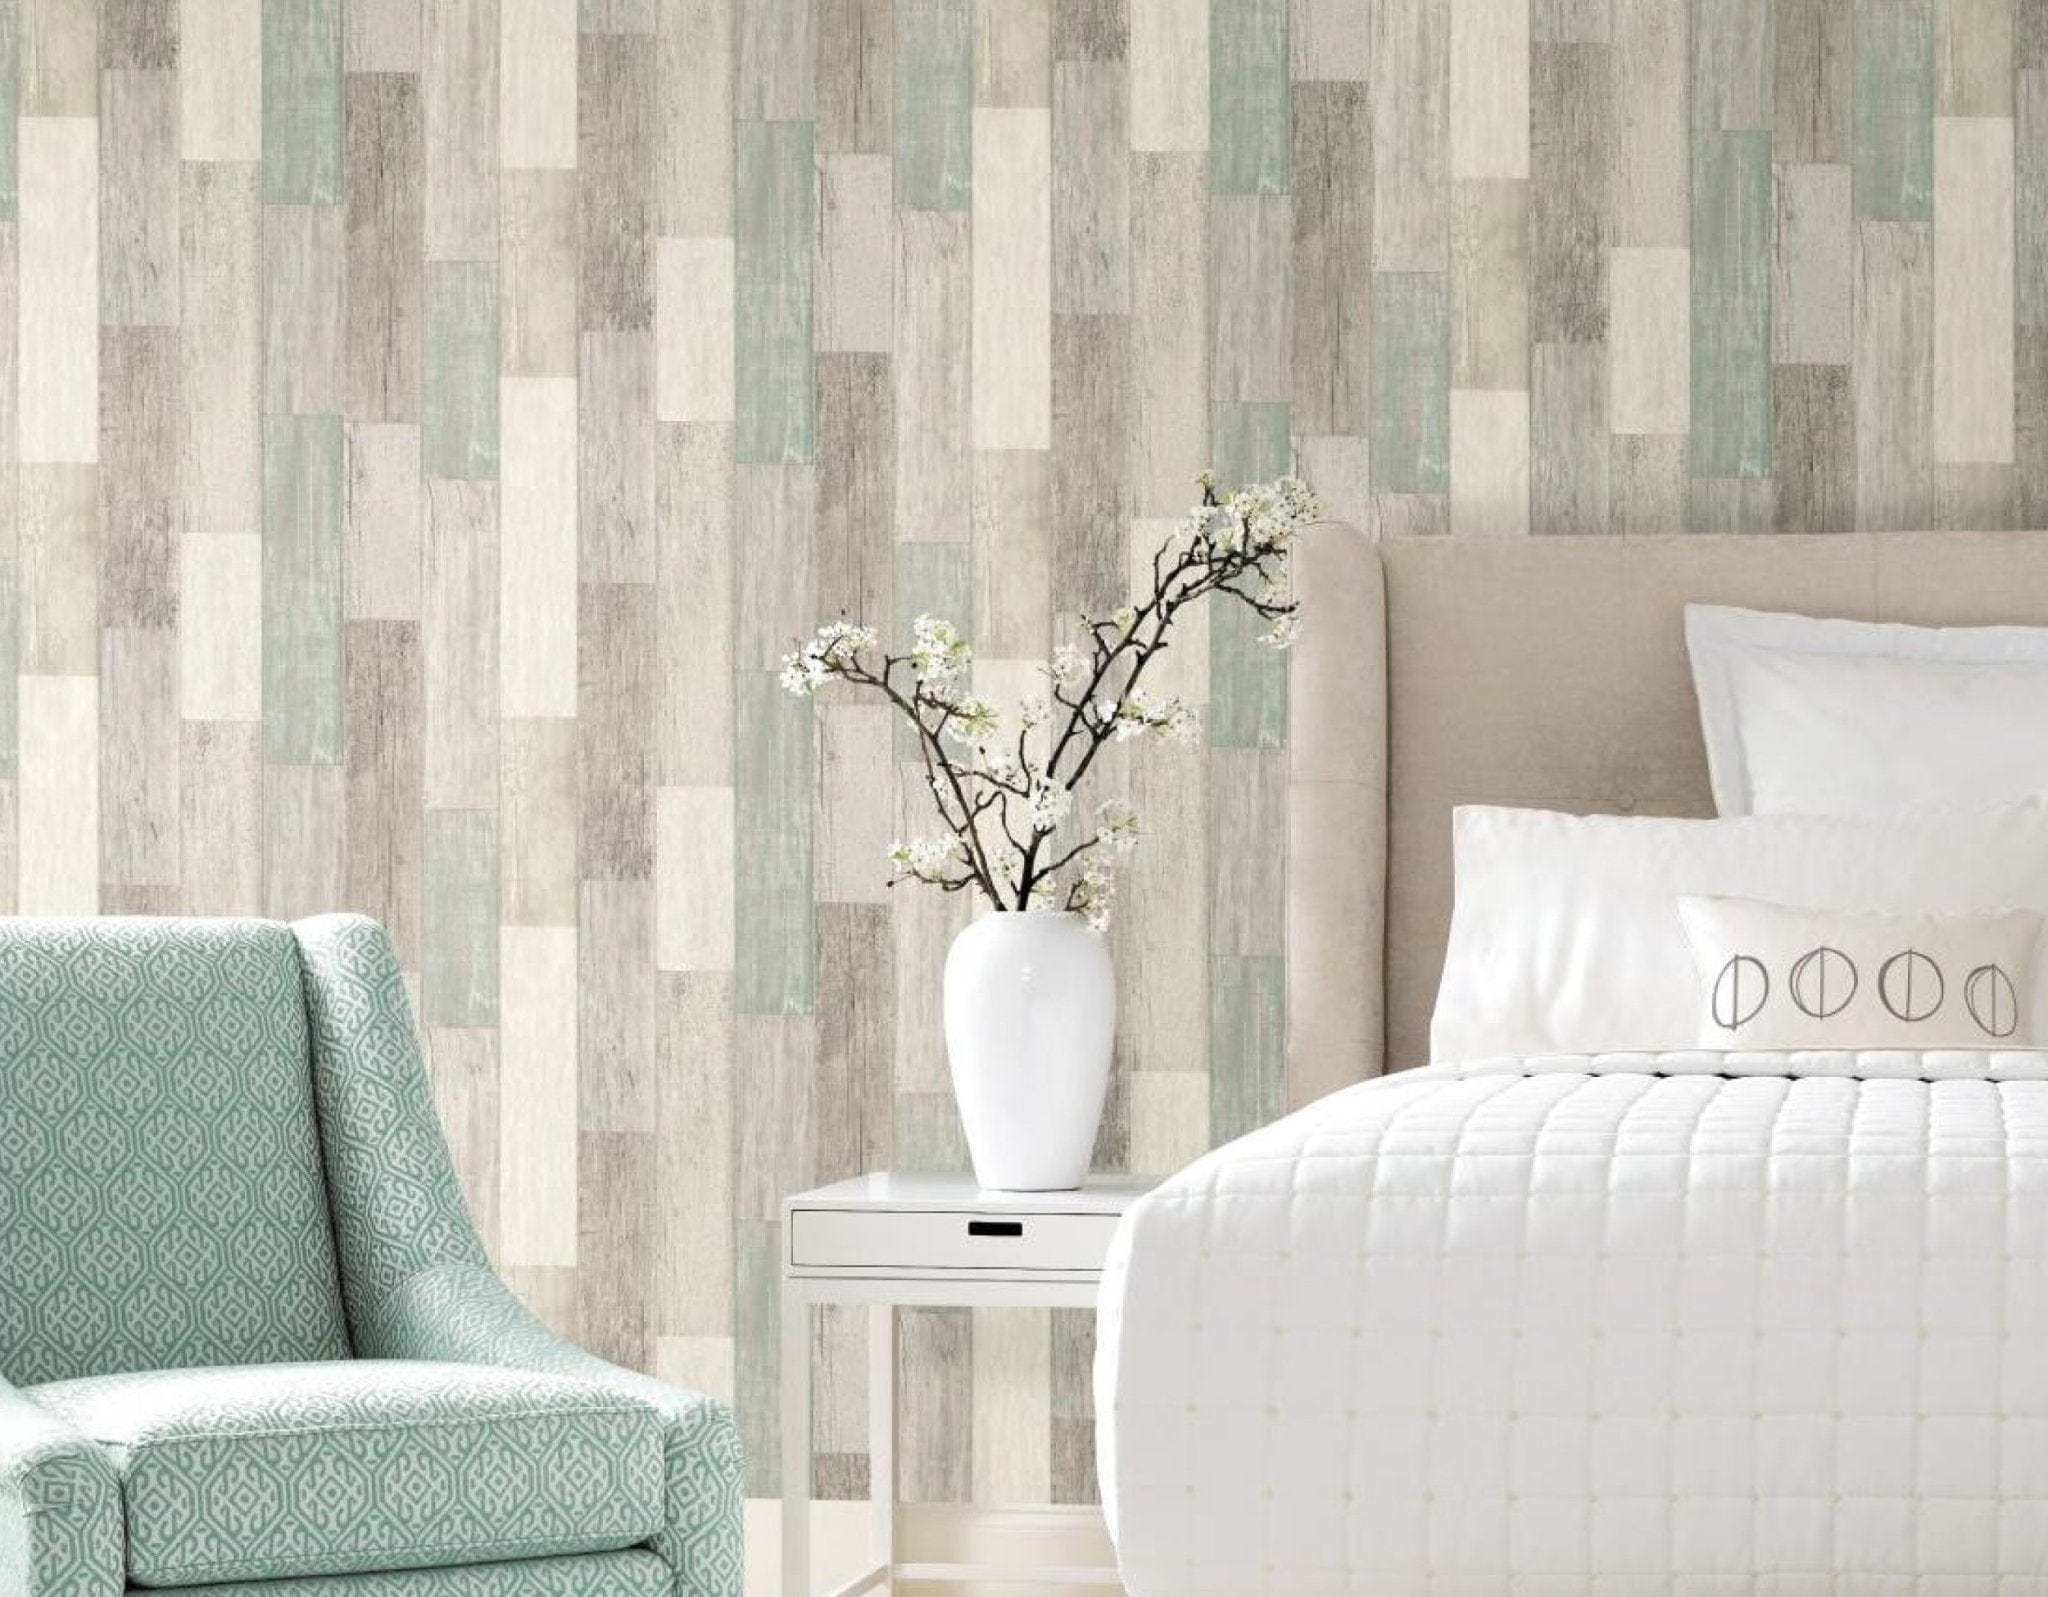 Wallplanks Wallpaper – Weathered Seaside Wood Plank Peel and Stick Wallpaper Sample - Wallplanks